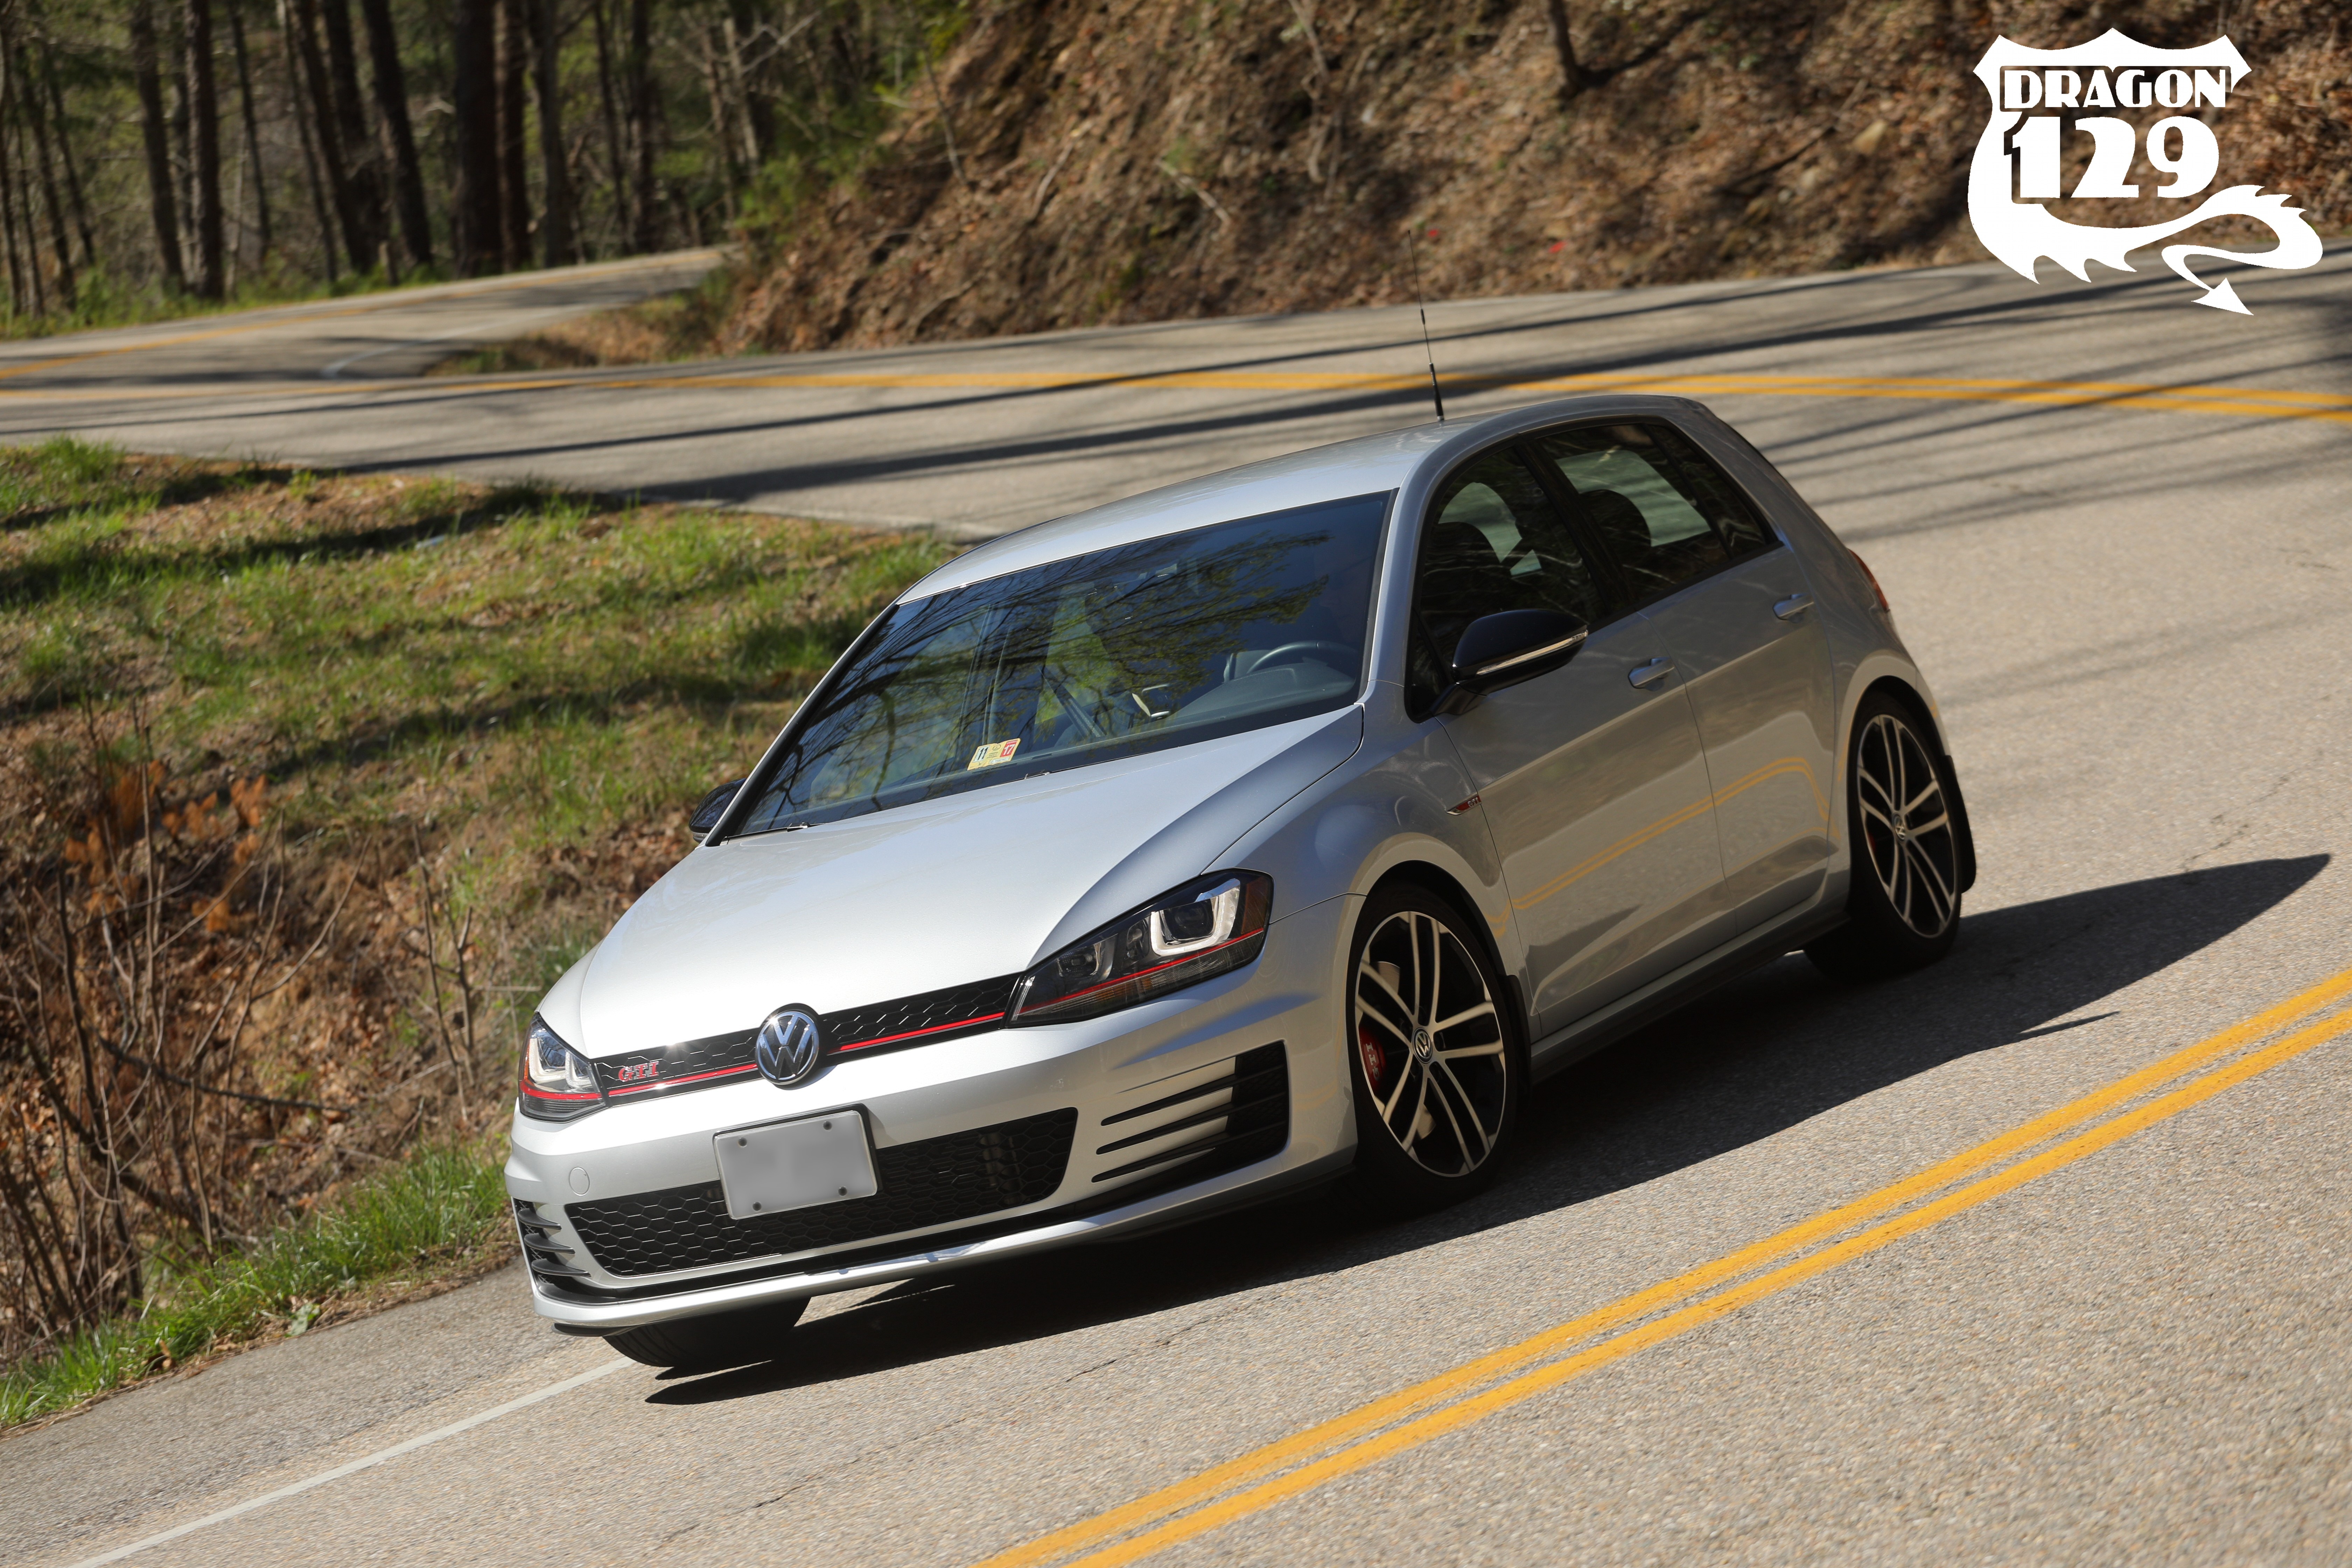 Tail Of The Dragon Photos >> Tail Of The Dragon Stealth Gti